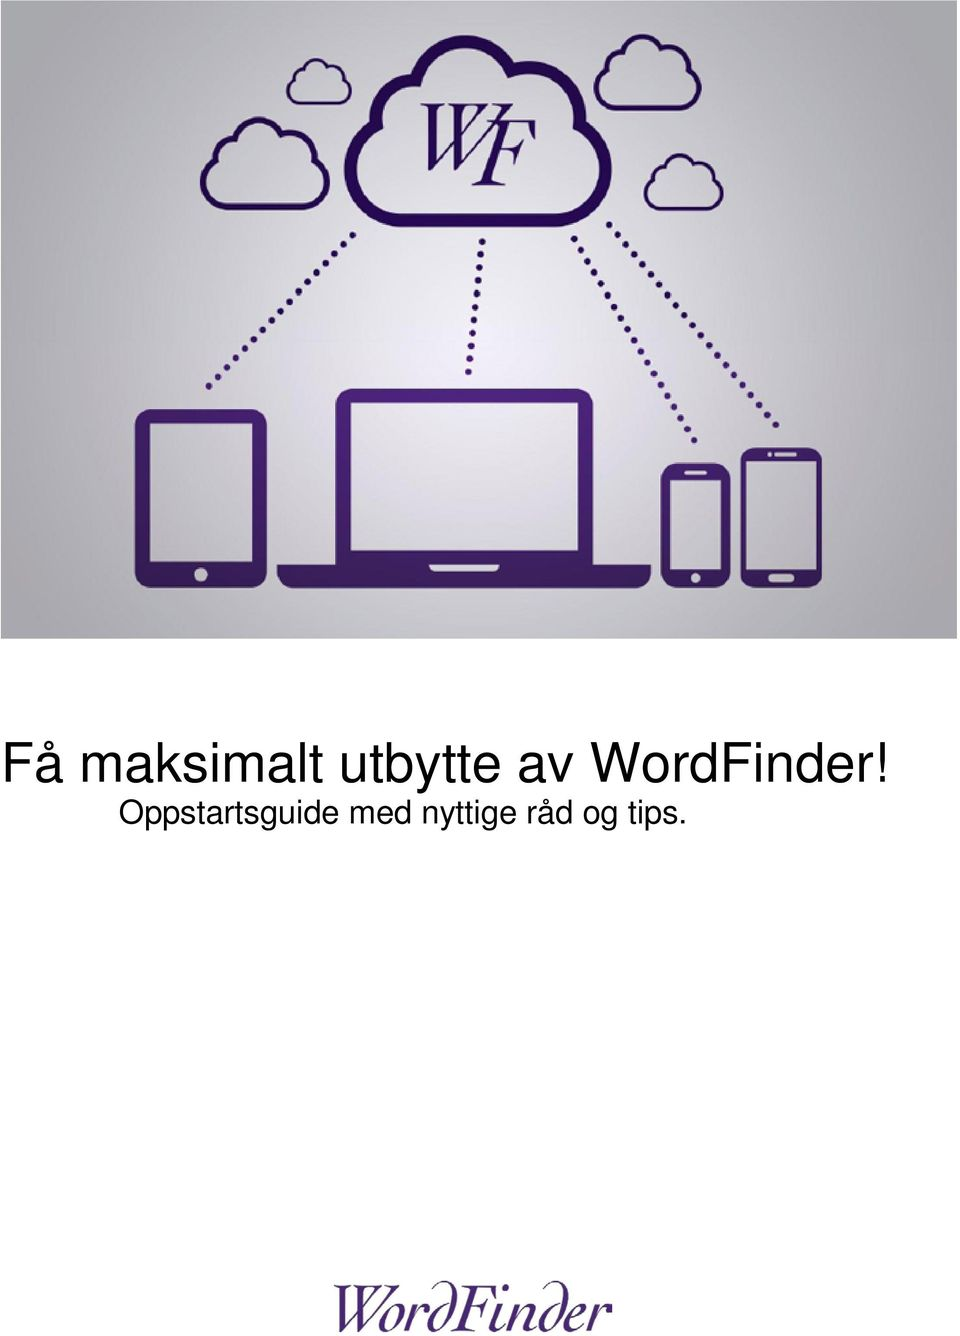 WordFinder!